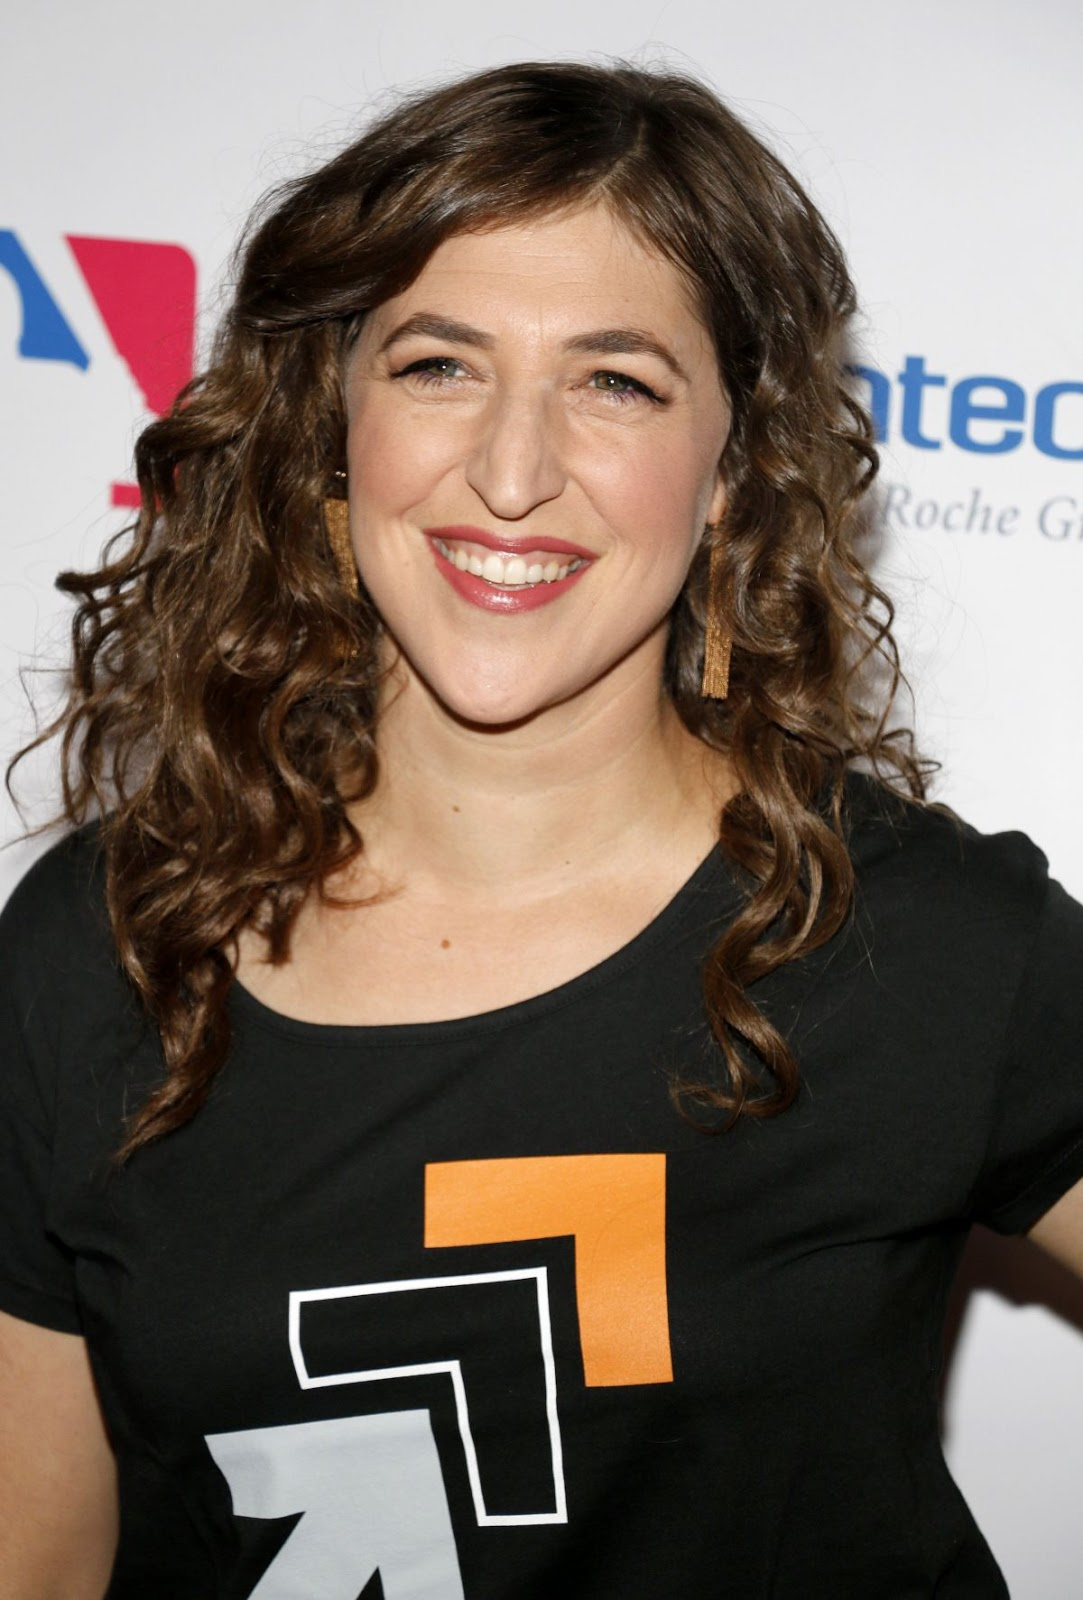 HQ Photos of Mayim Bialik At 5th Biennial Stand Up To Cancer In Los Angeles